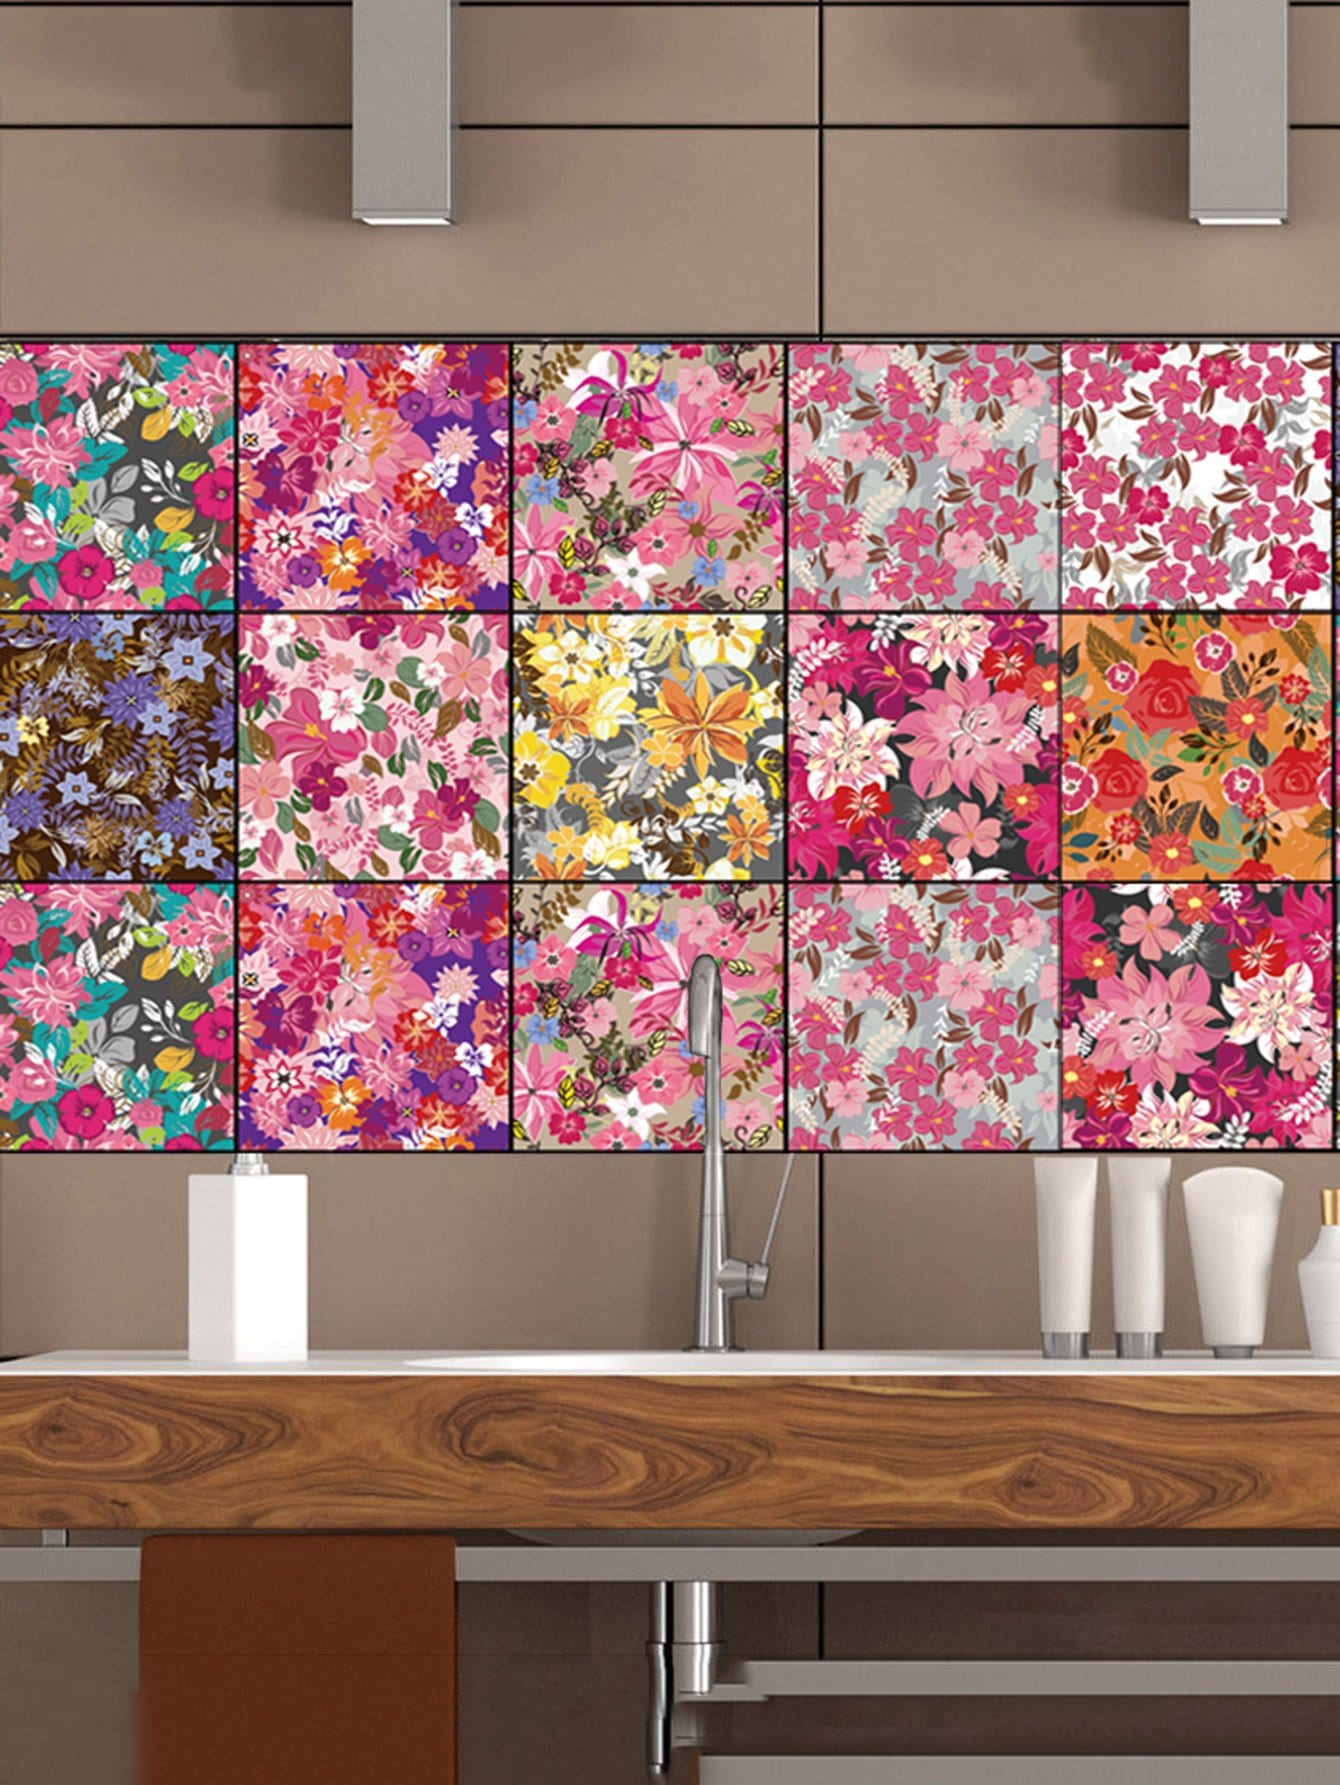 Random Flower Pattern Ceramic Tile Sticker 1pc